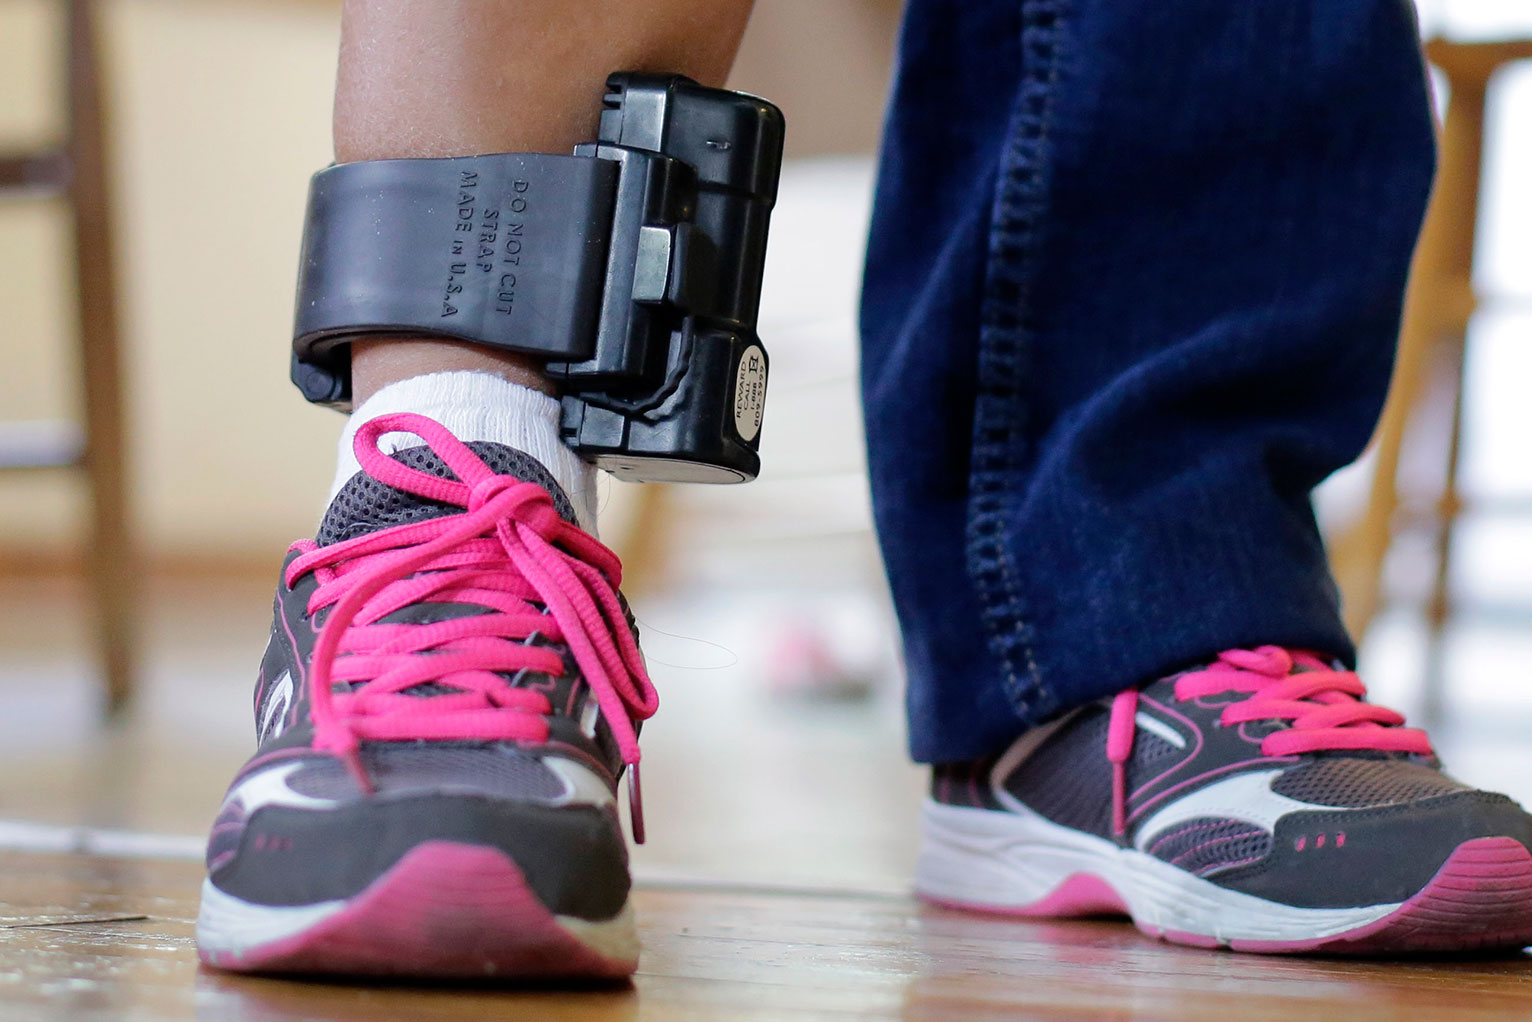 Use Of Ankle Monitors Surges, But Effectiveness An Open Question  Data  Mine  Us News